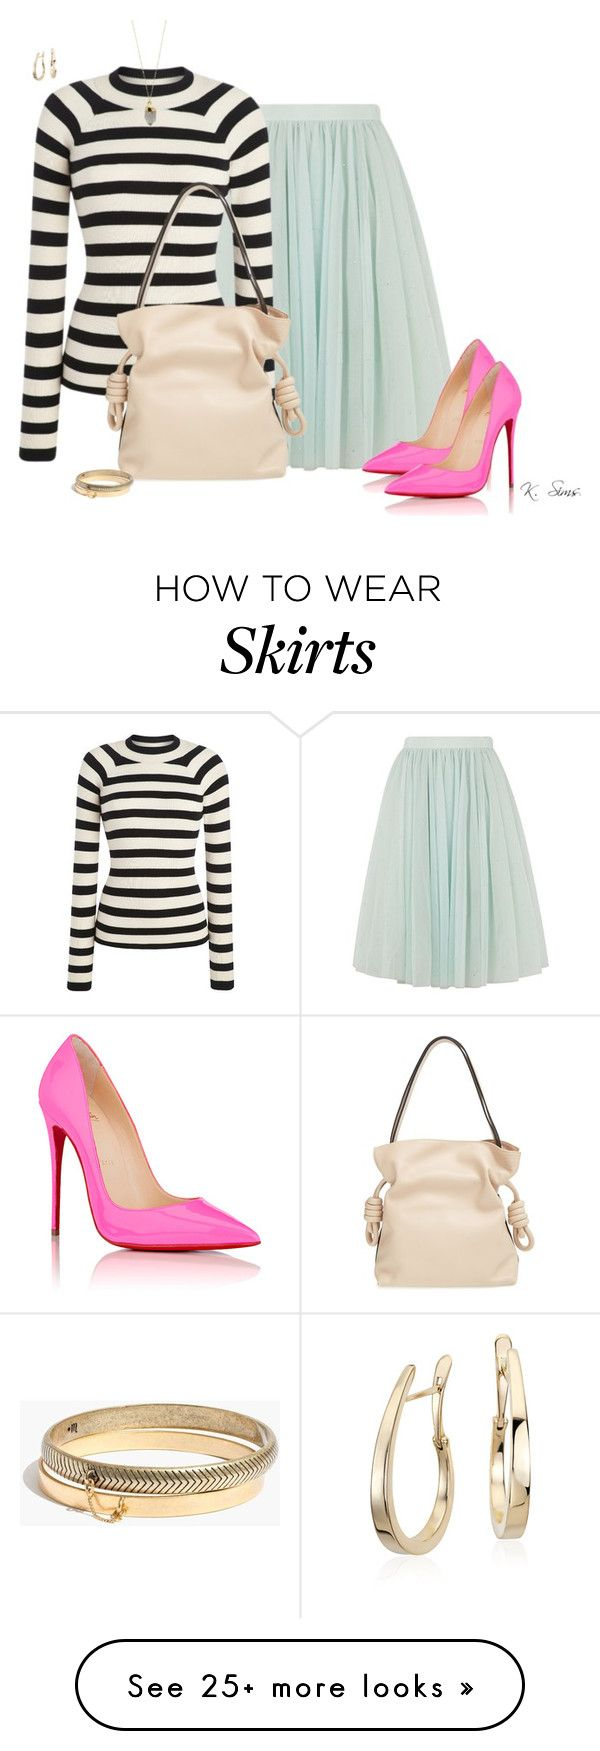 """Style a tulle skirt"" by ksims-1 on Polyvore featuring Ted Baker, Christian Louboutin, Loewe, Blue Nile and Madewell"